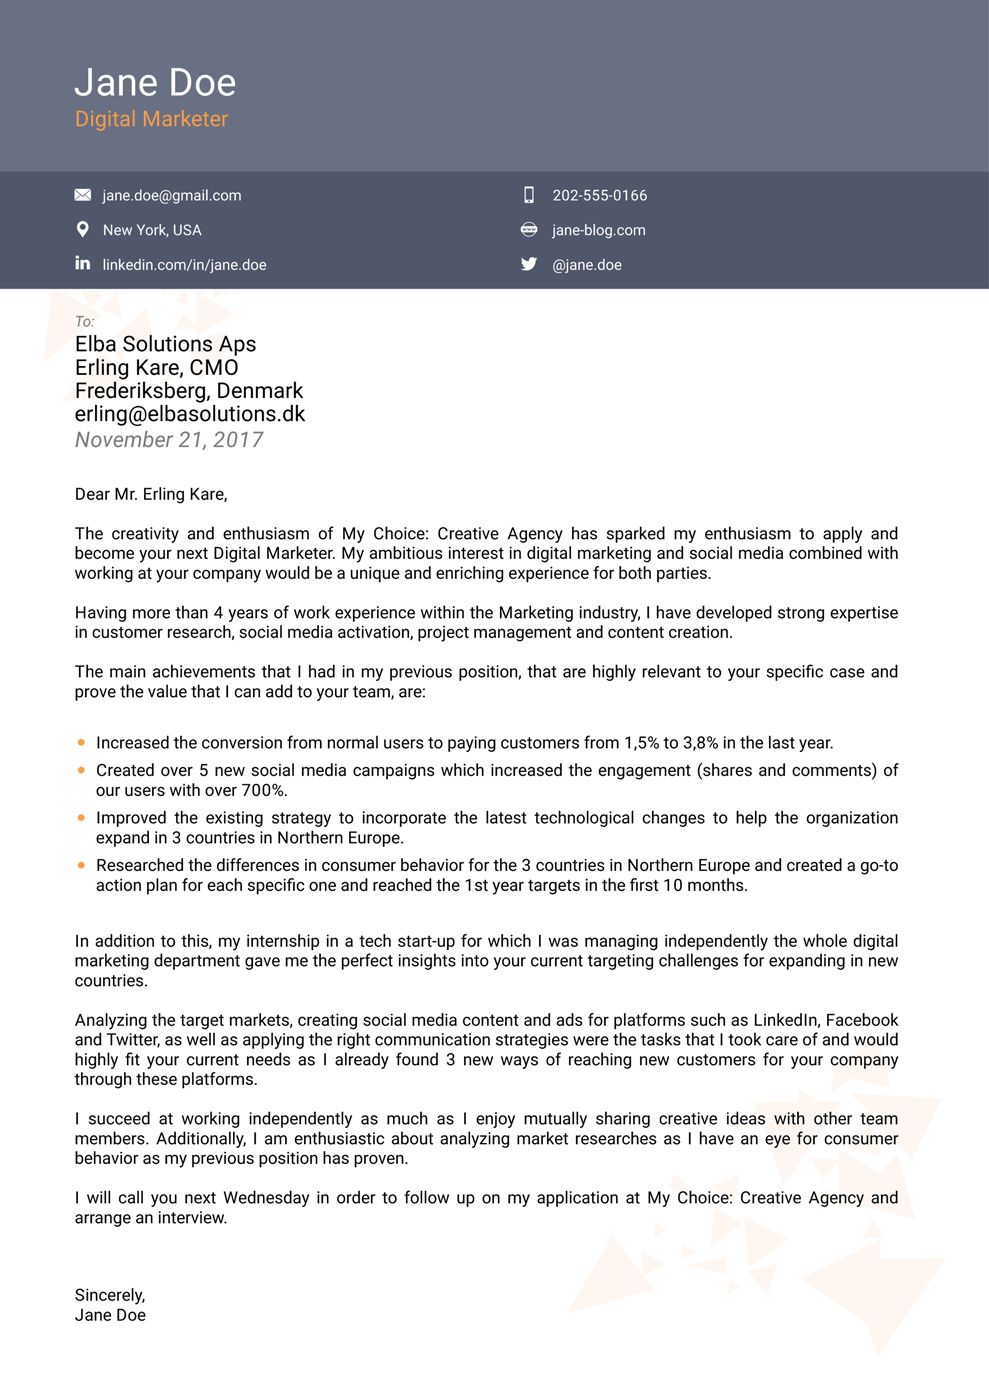 cover letter template for job application download